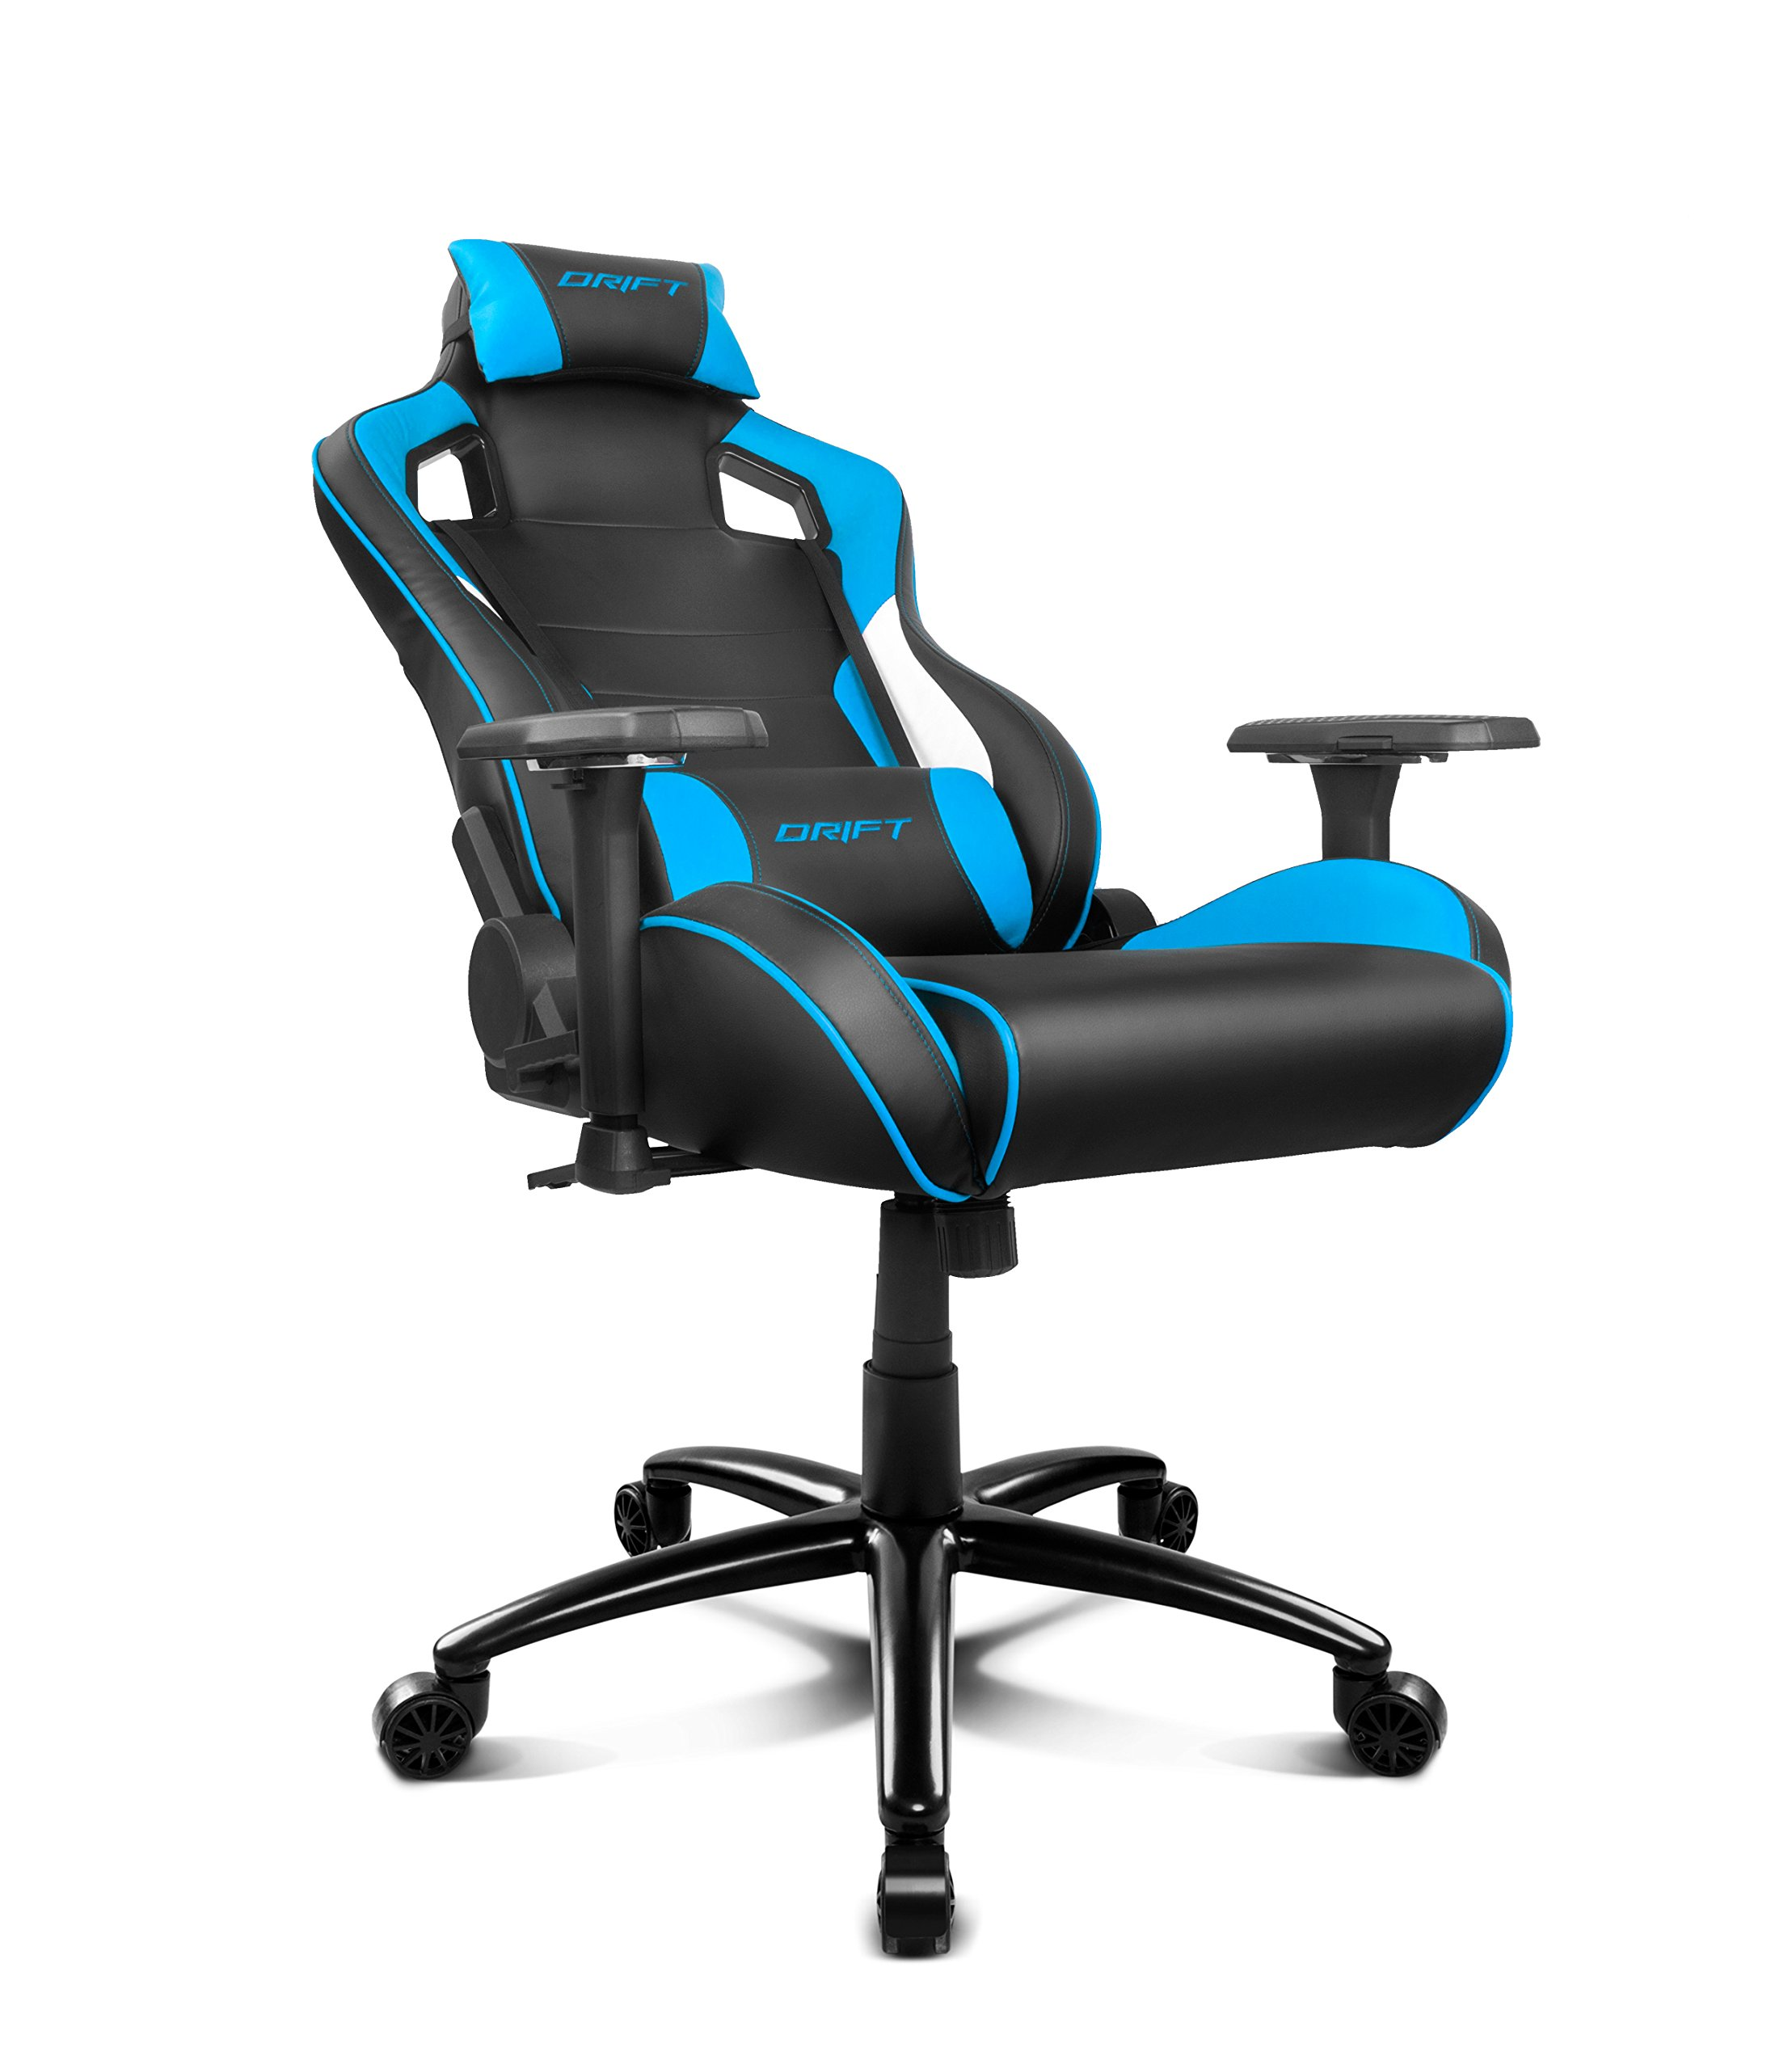 81aZOnHTV4L - Drift DR400BL - Silla Gaming, Color Negro y Azul